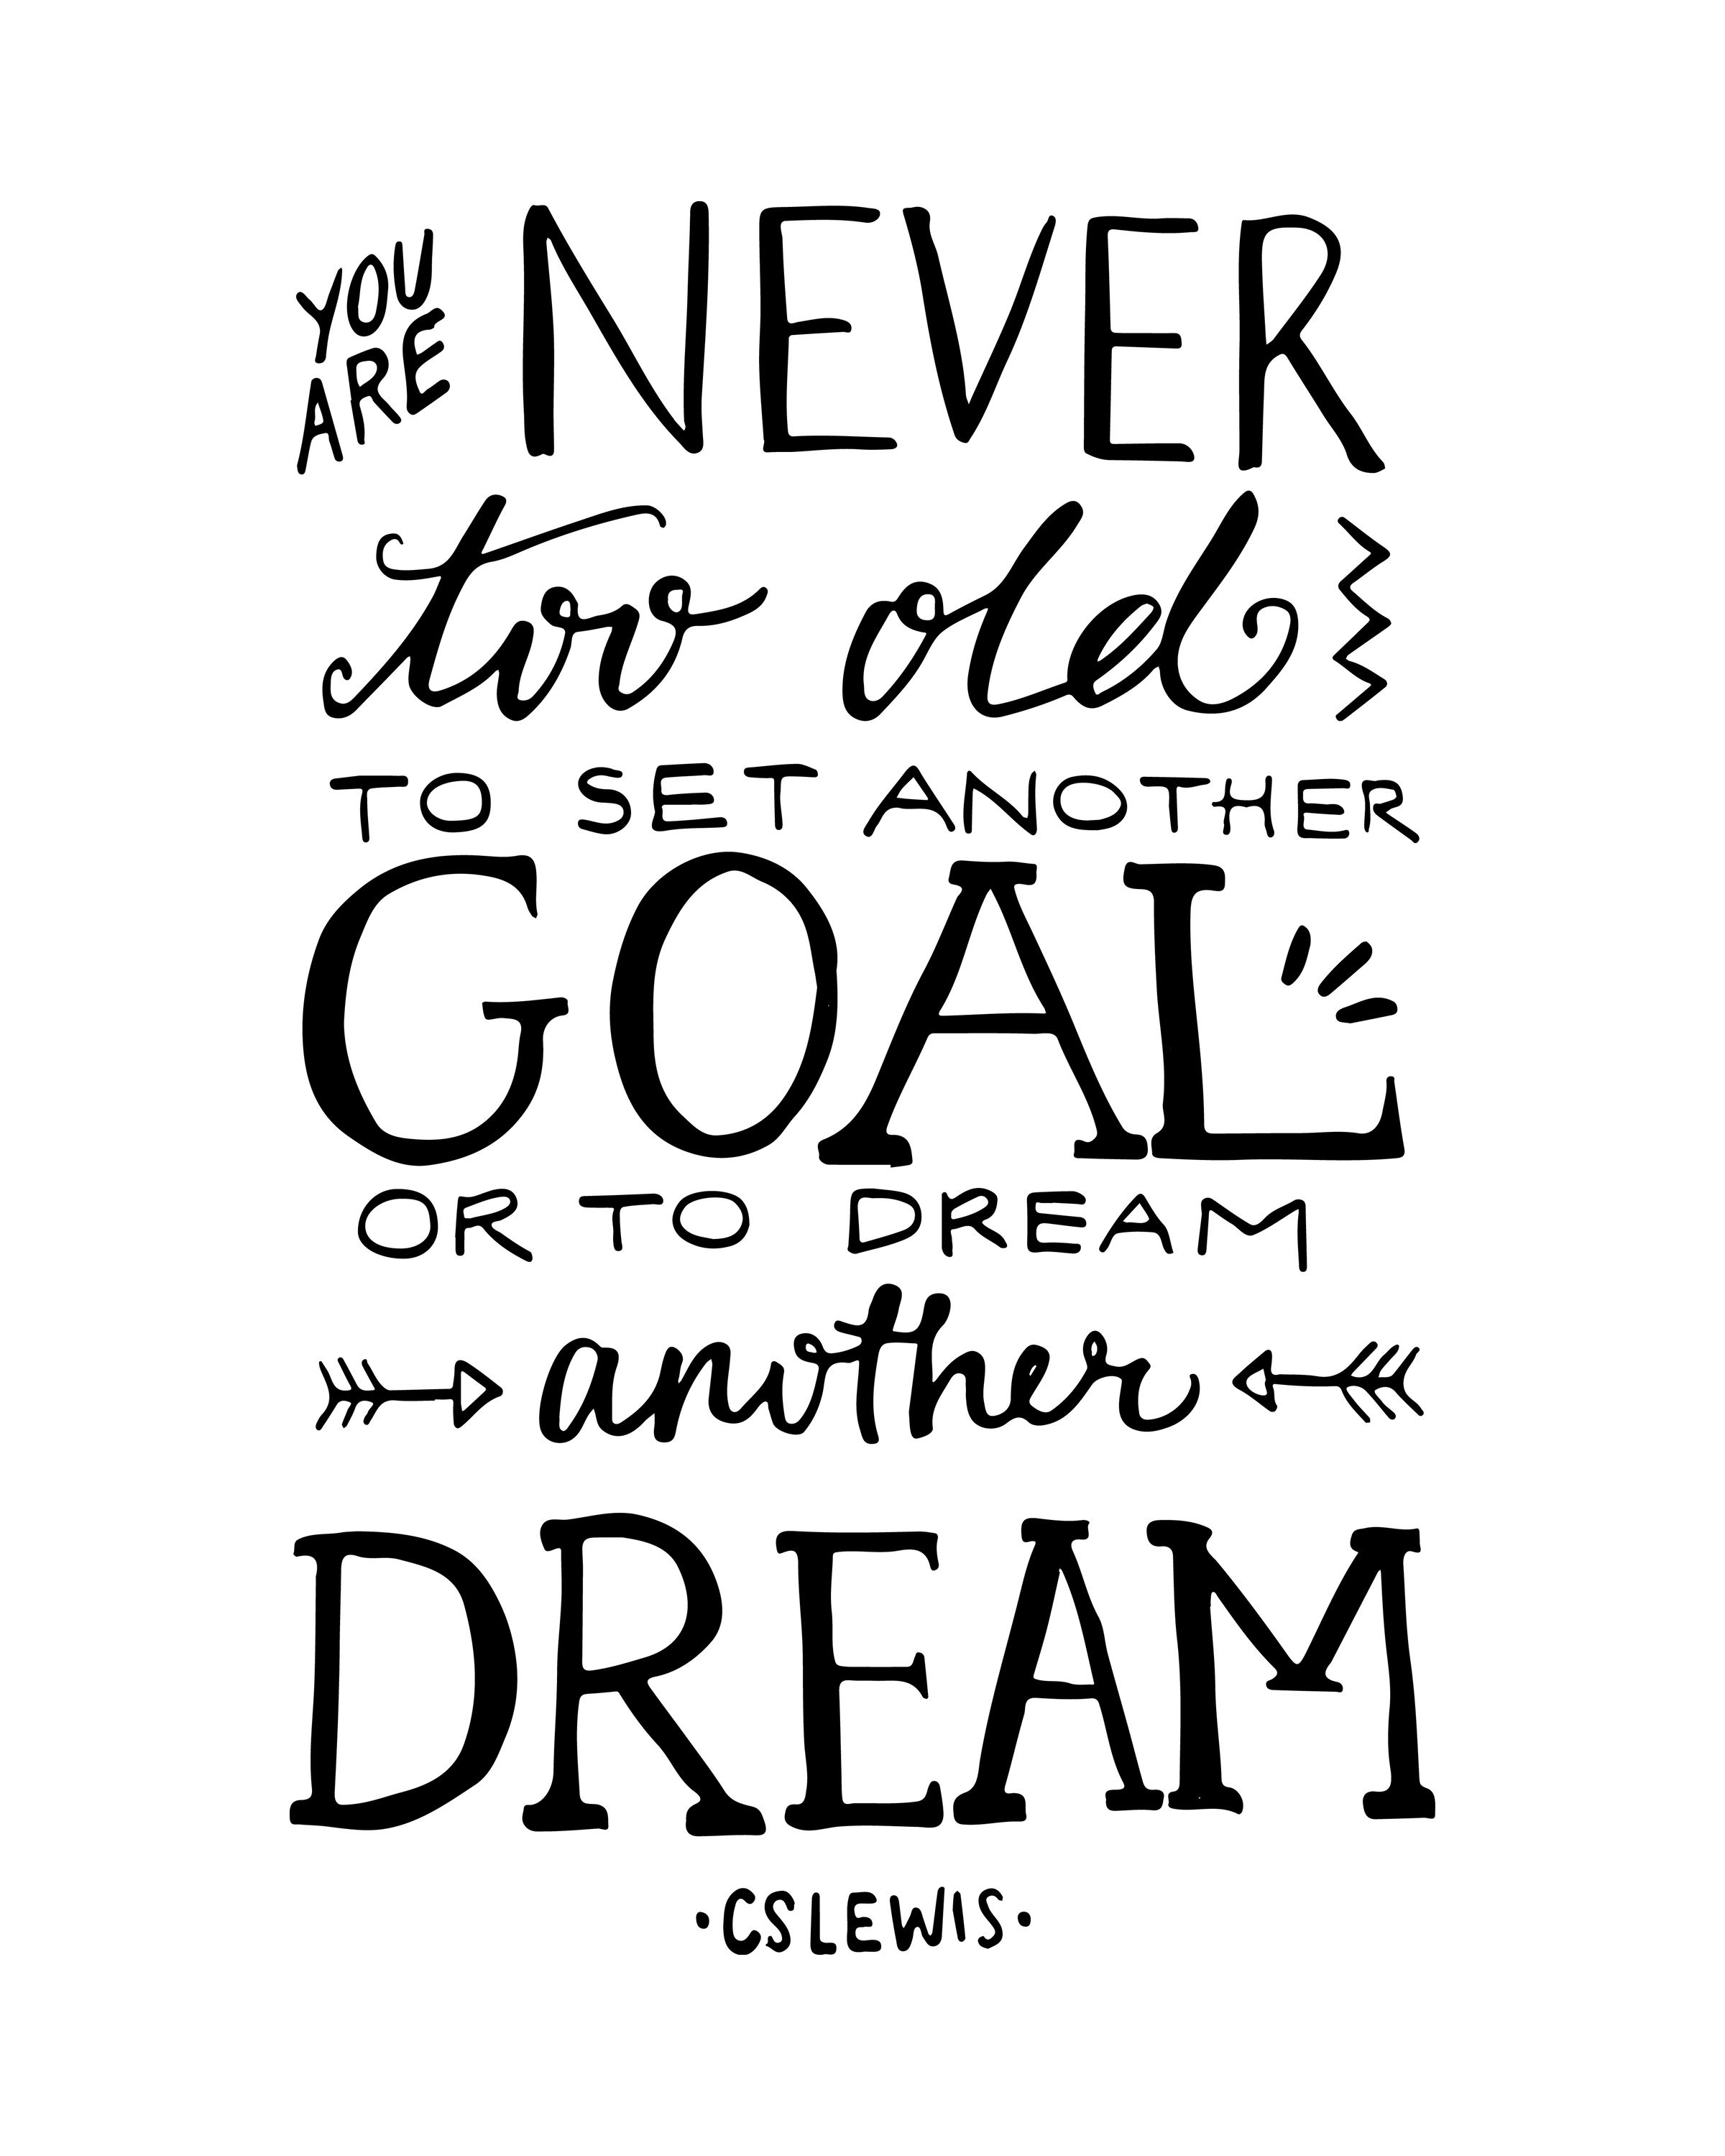 You Are Never Too Old To Set Another Goal Or To Dream Another Dream   C. S.  Lewis. Quote Hand Lettered Using Brush Pen By Samantha Ranlet.